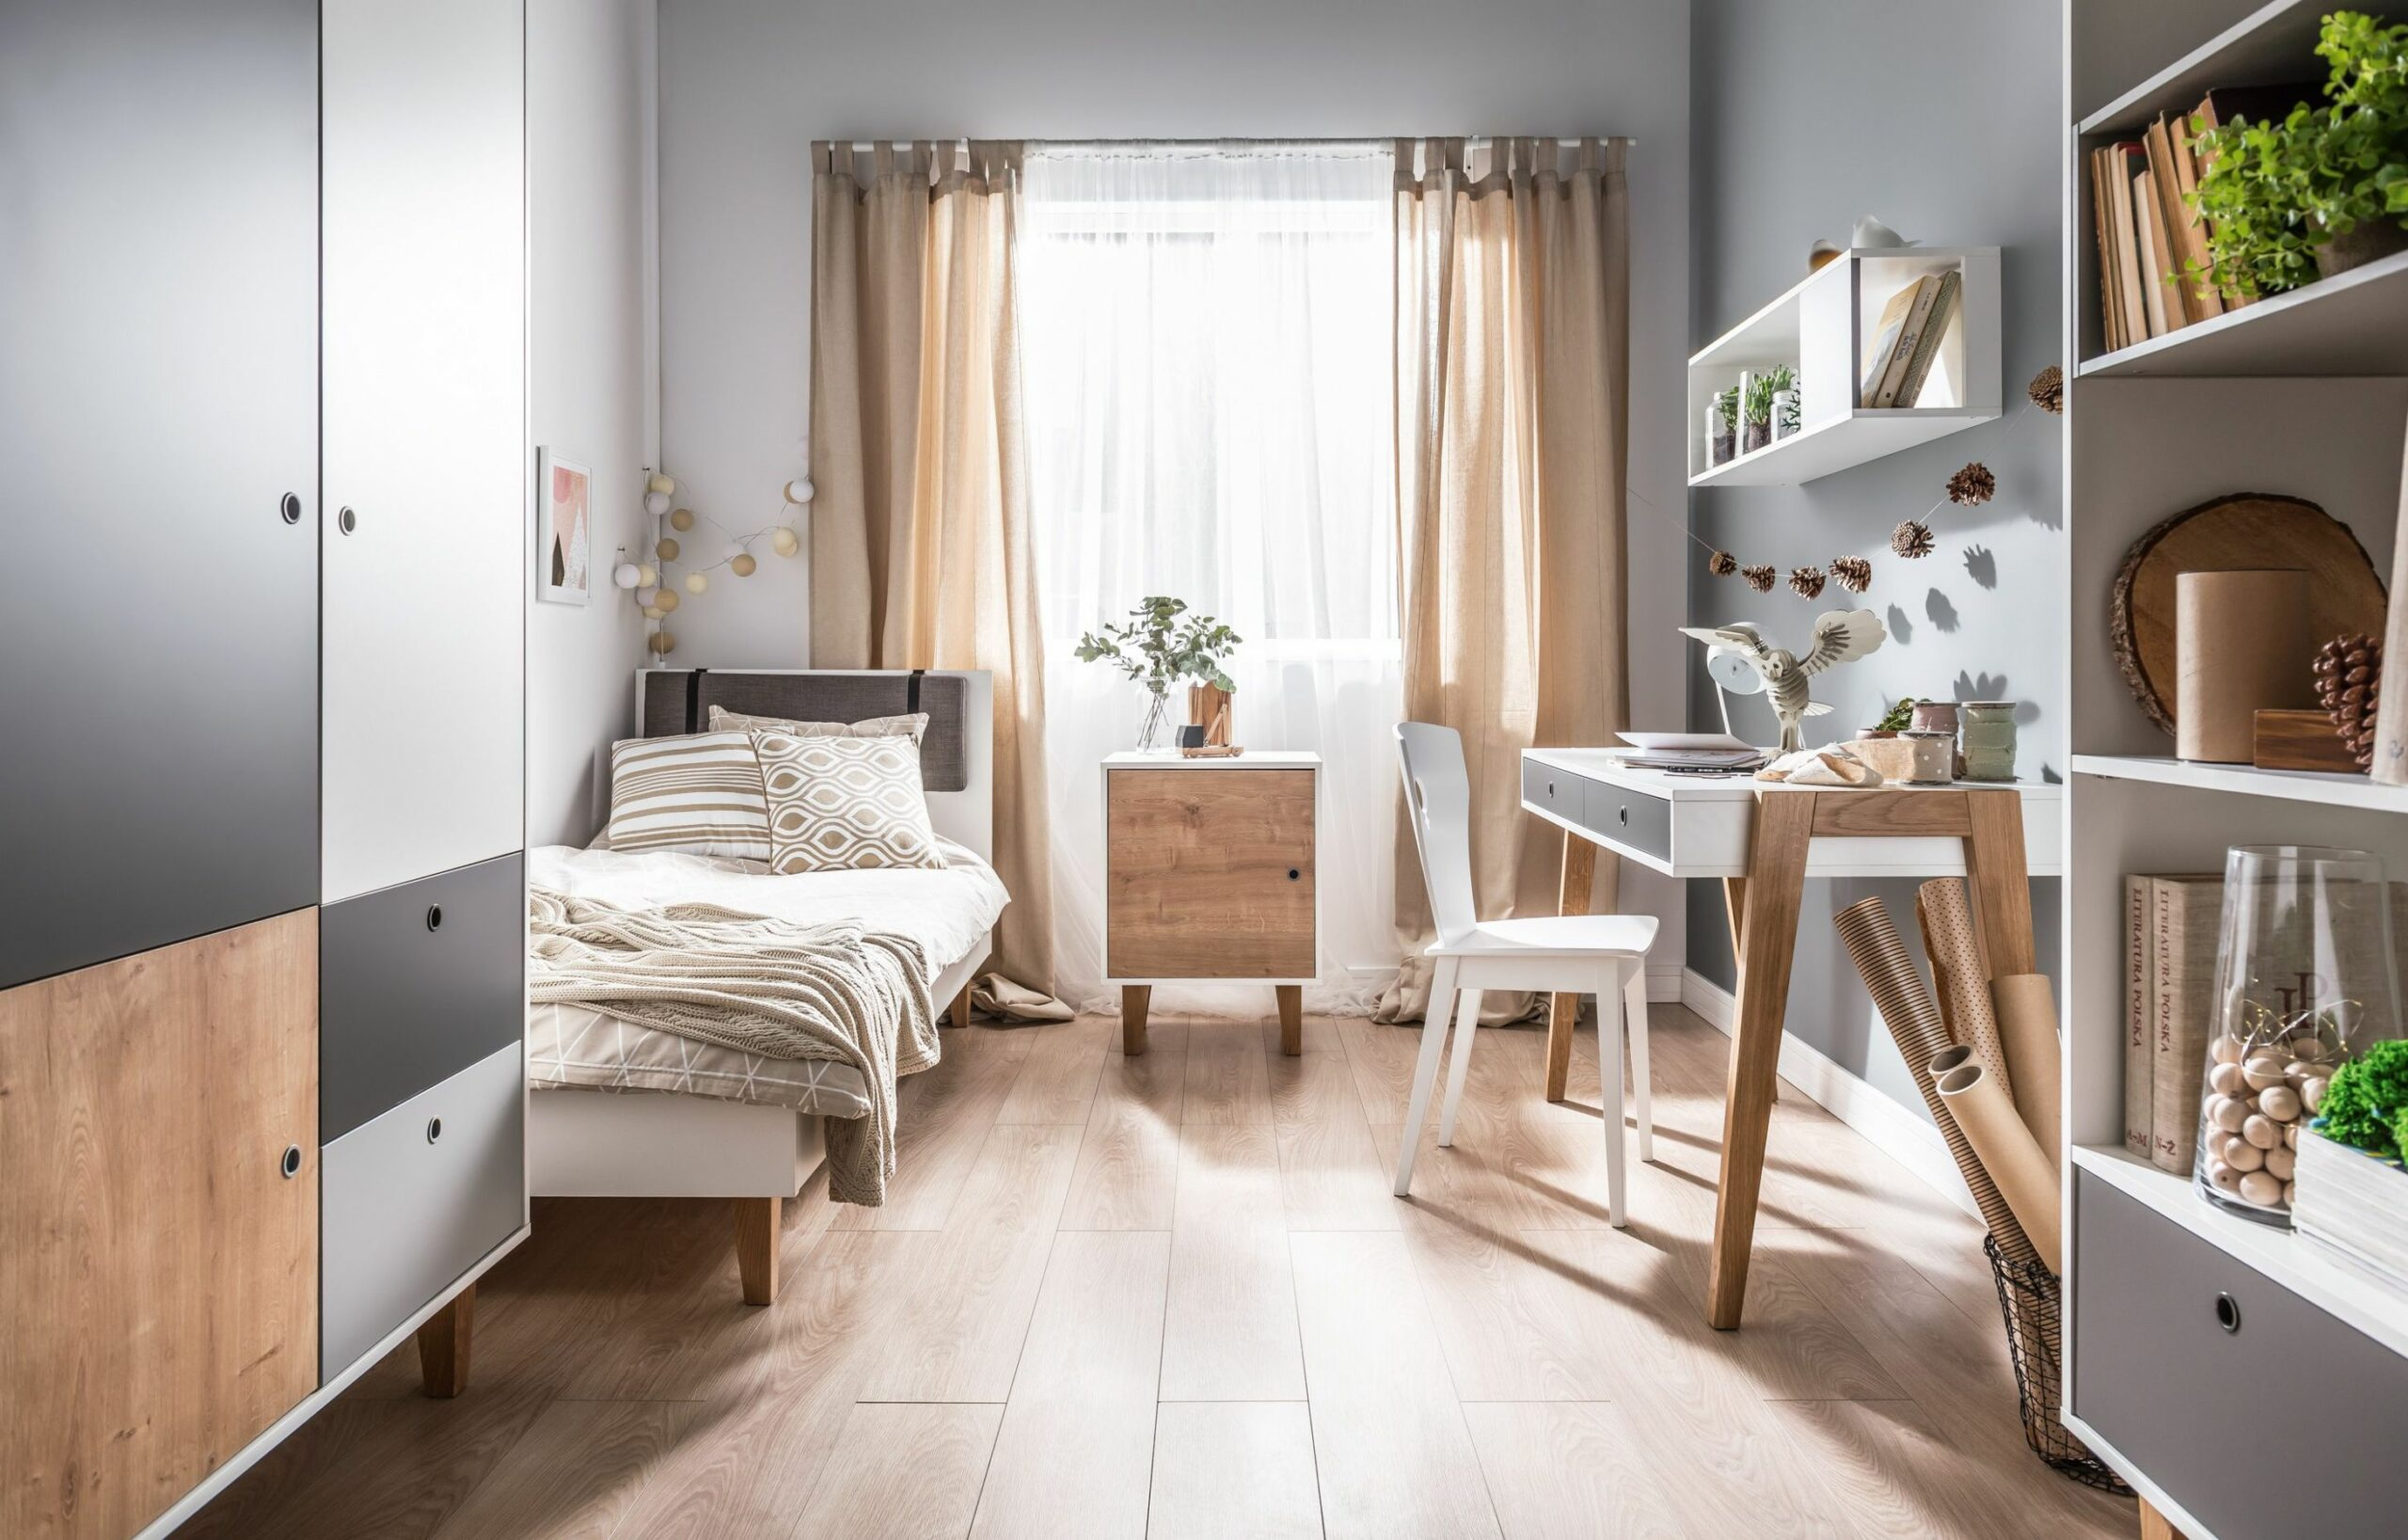 11 Small Bedroom Ideas To Fall In Love With – Small Bedroom ..